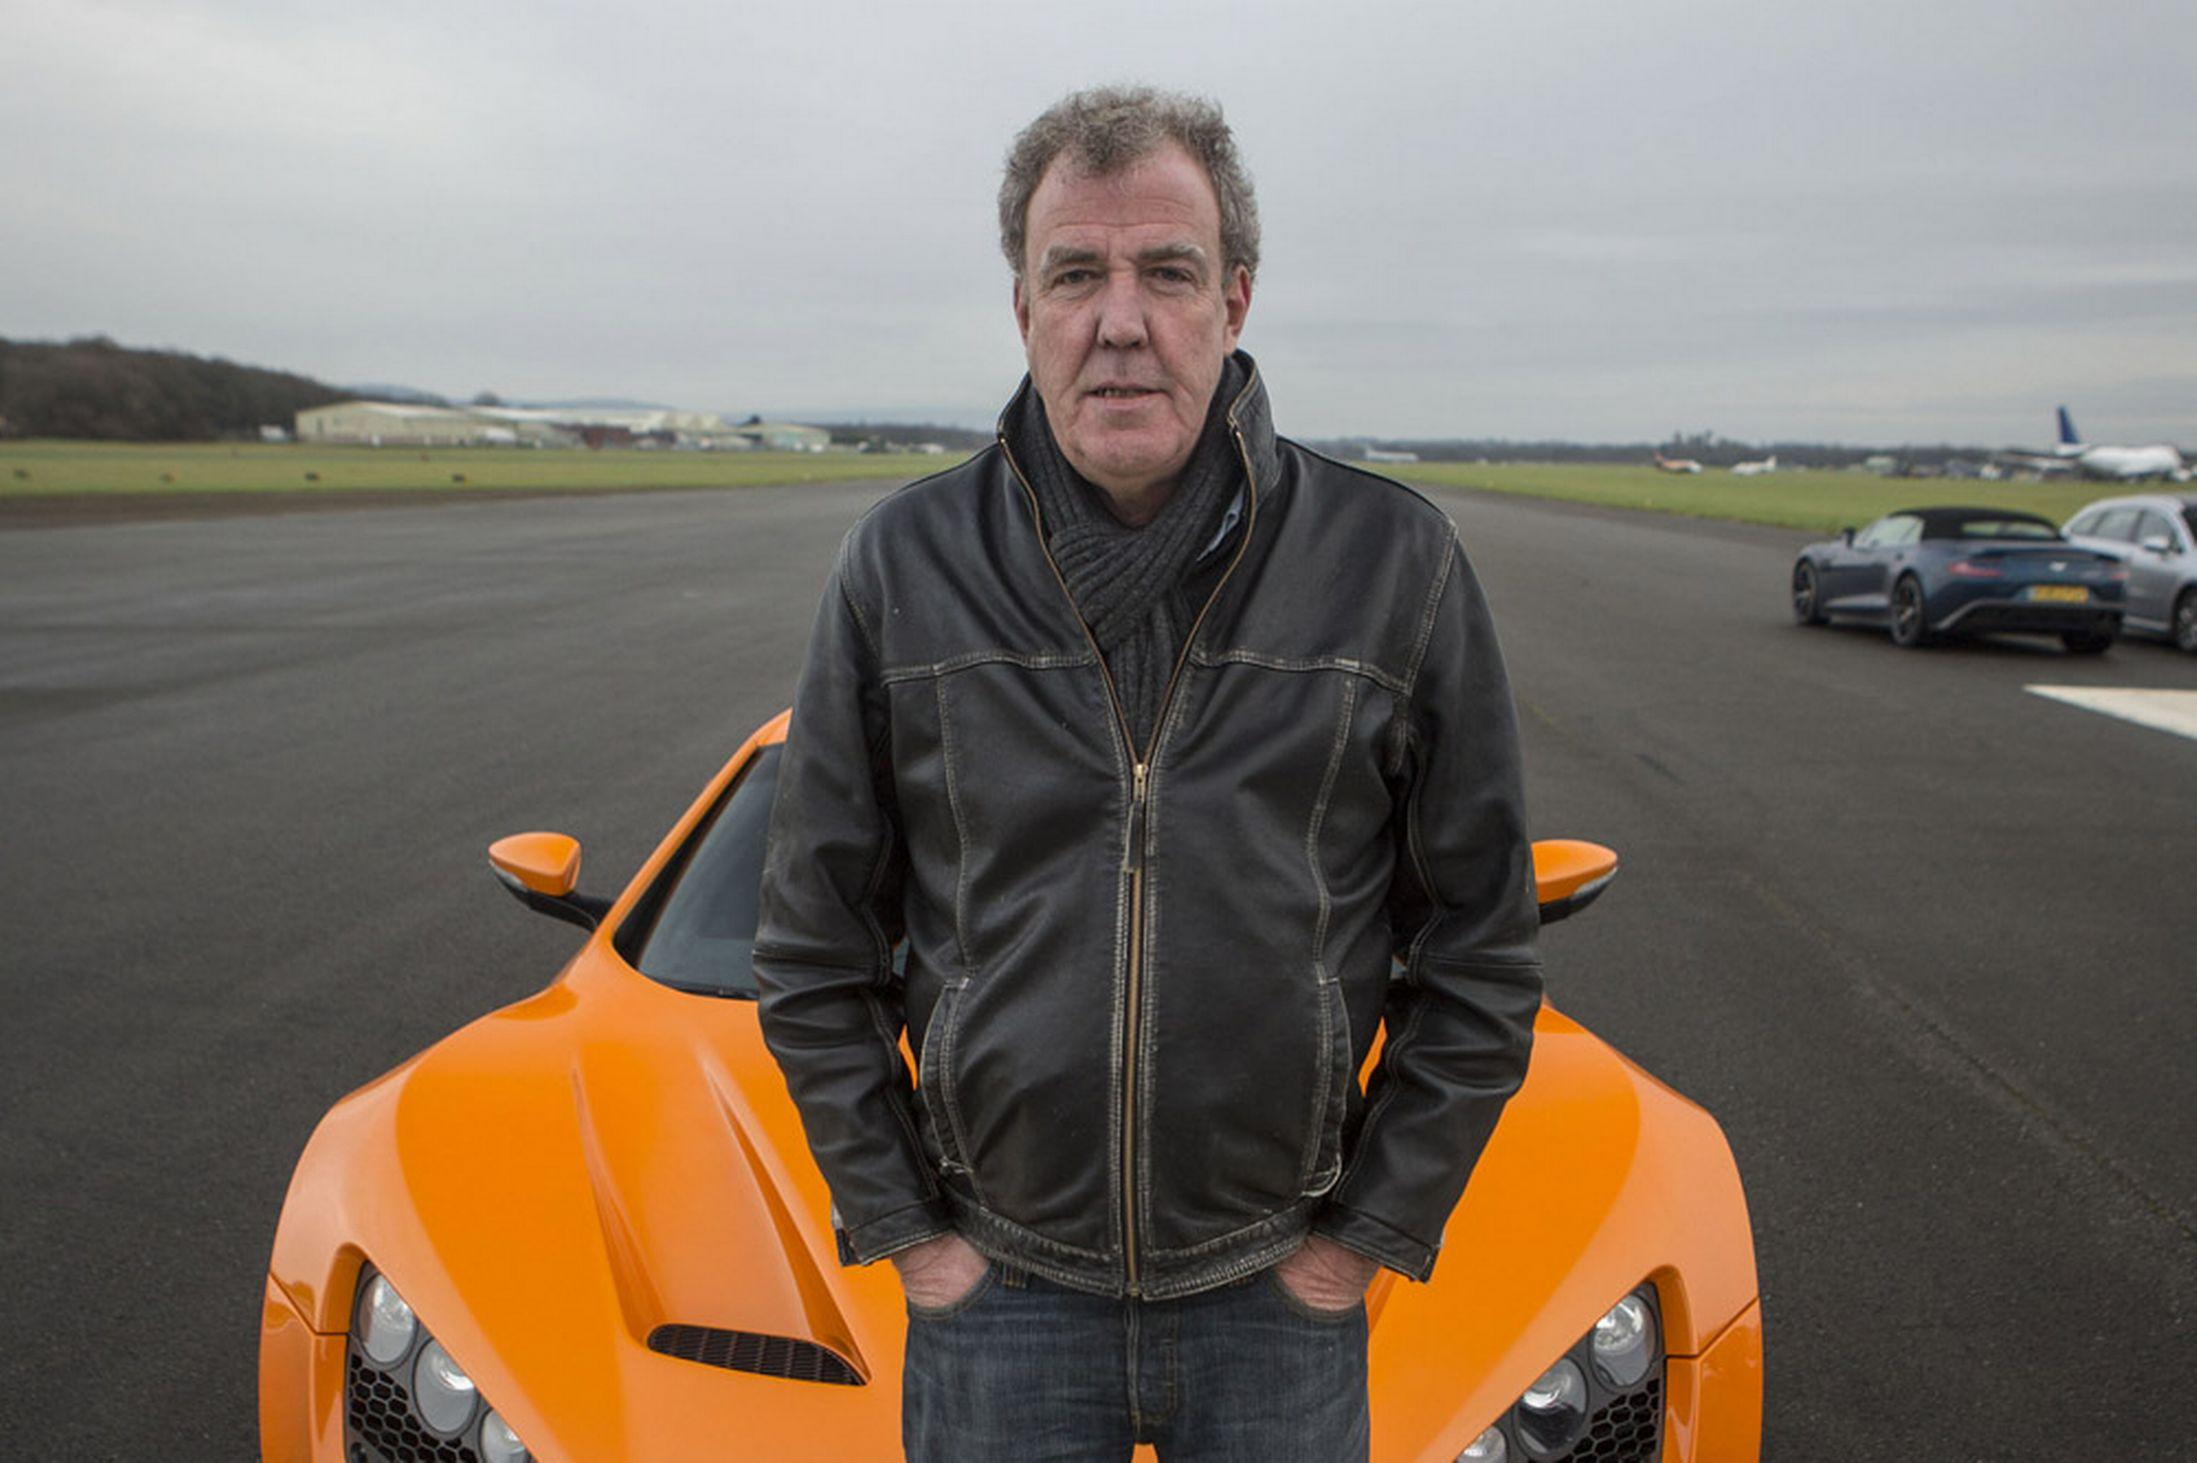 'Top Gear': Jeremy Clarkson's Contract Won't Be Renewed By BBC – Reports